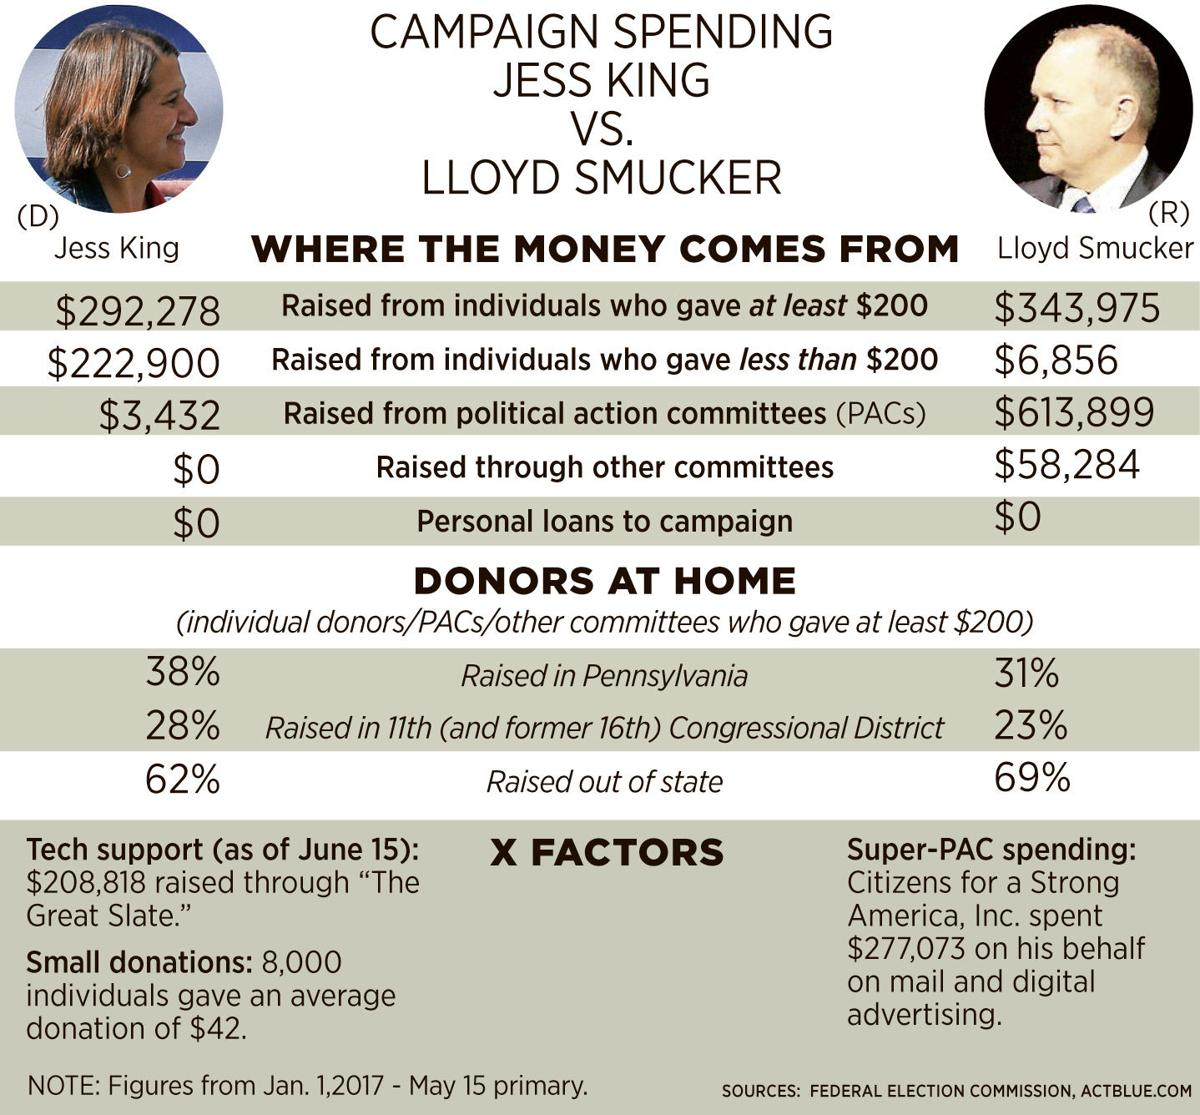 problem solvers caucus parent group was behind $277k in super-pac